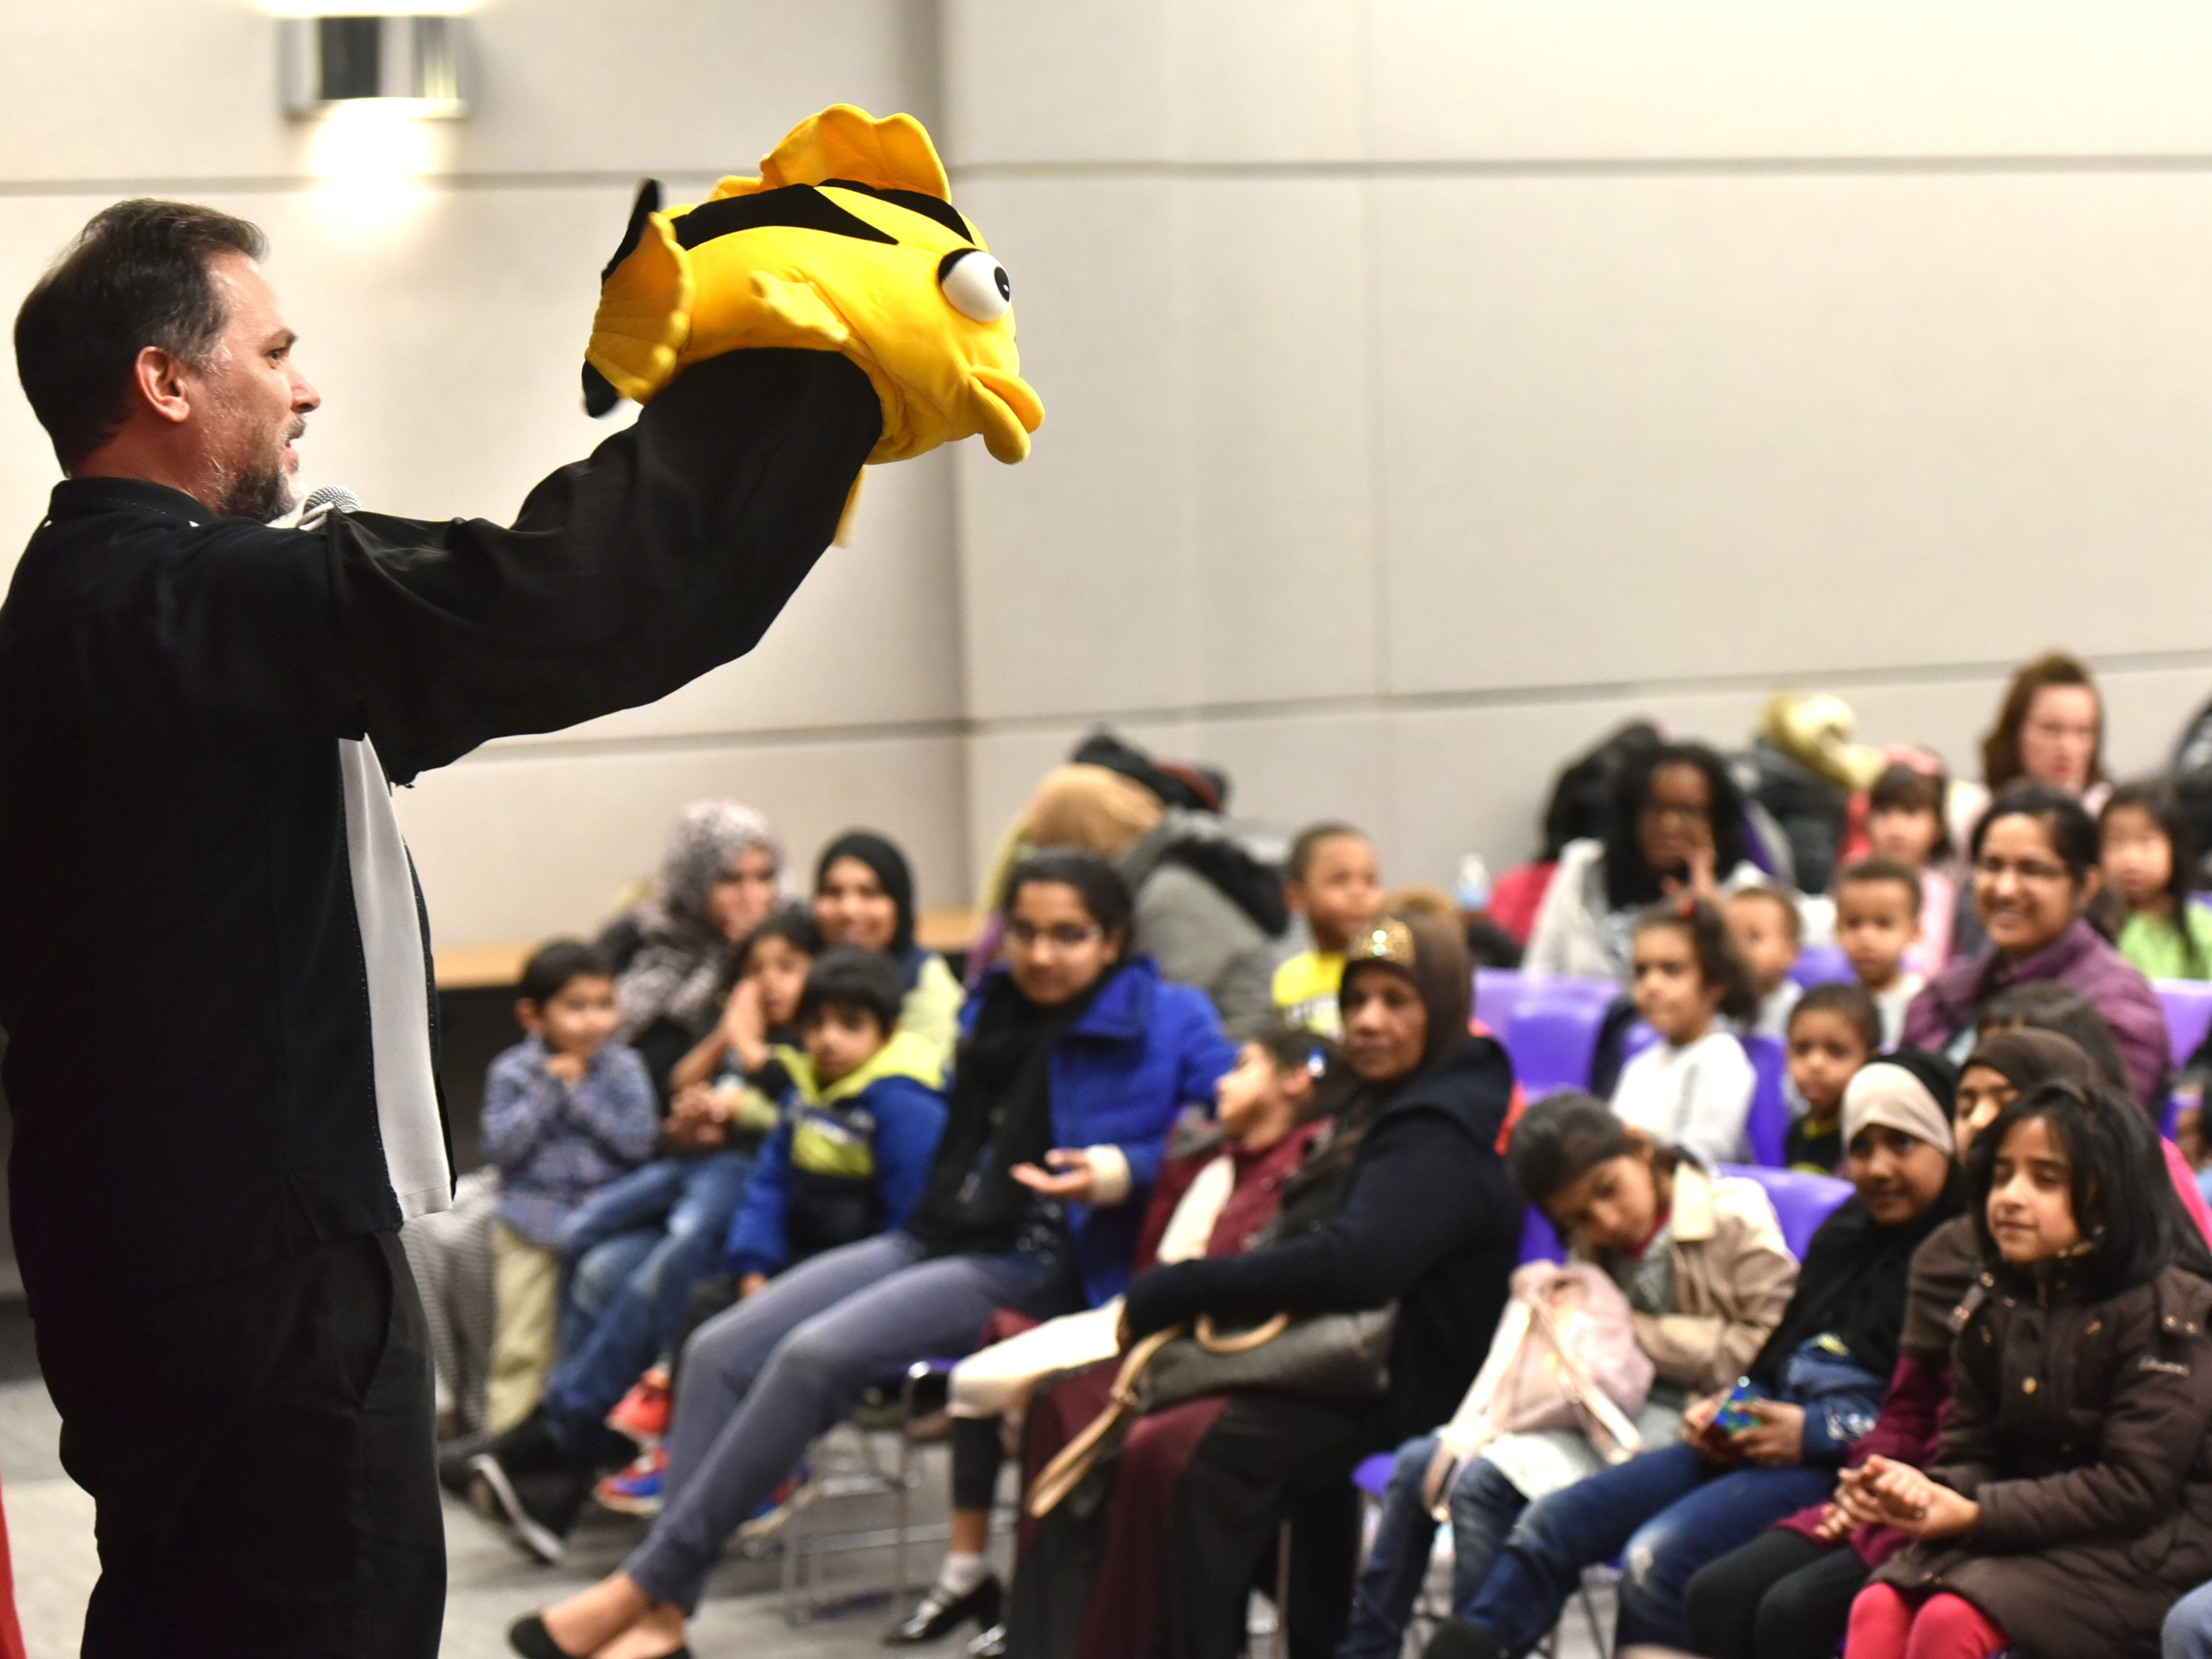 Eugene Clark introduces his audience to Jo-Jo Fish before his April 2 puppet show at the Farmington Hills Library.